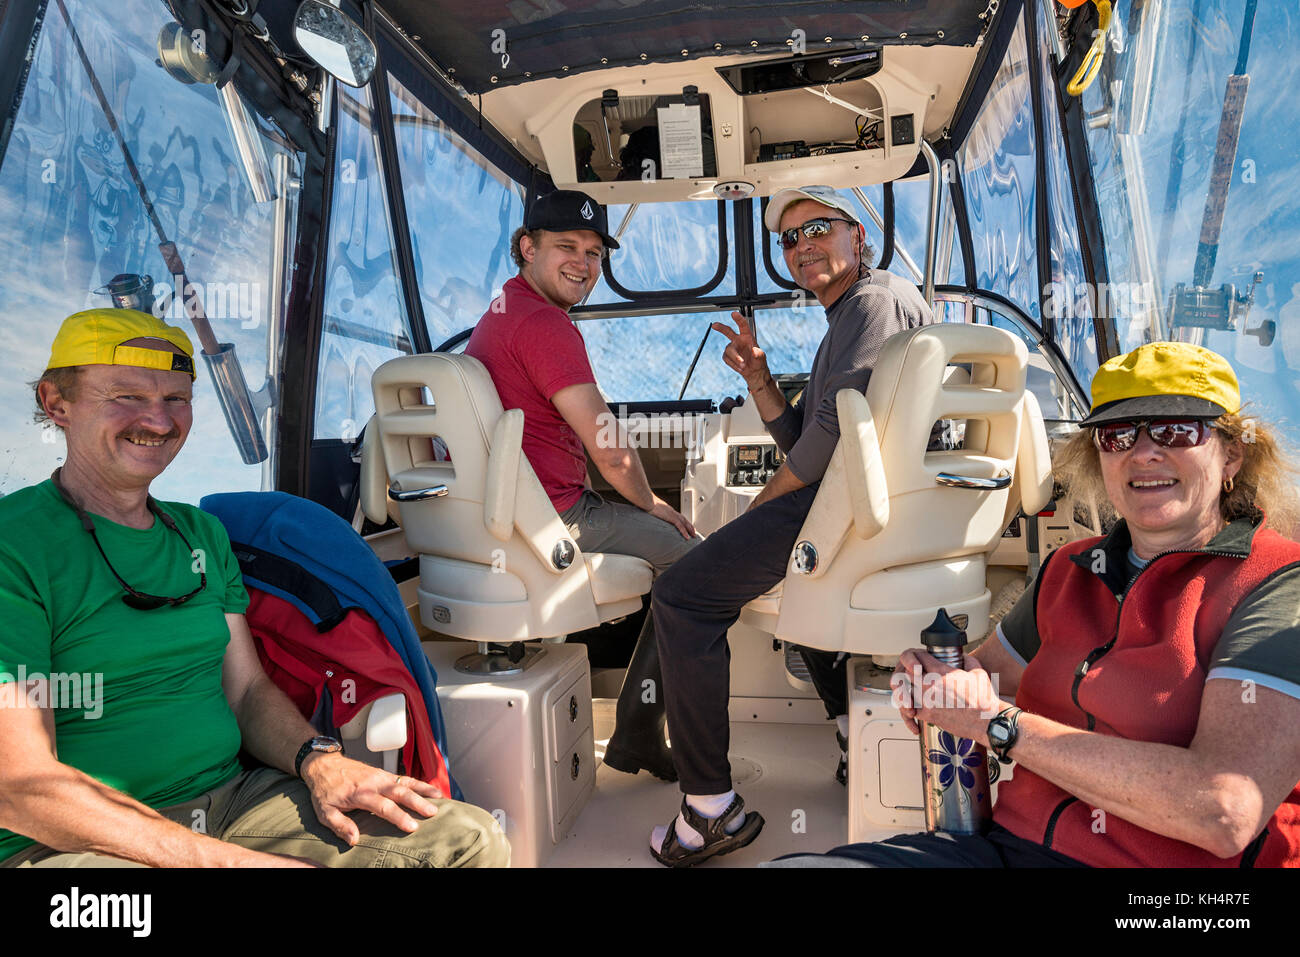 Four people sitting in a  speedboat, returning from a fishing trip, smiling, looking at camera, Vancouver Island - Stock Image